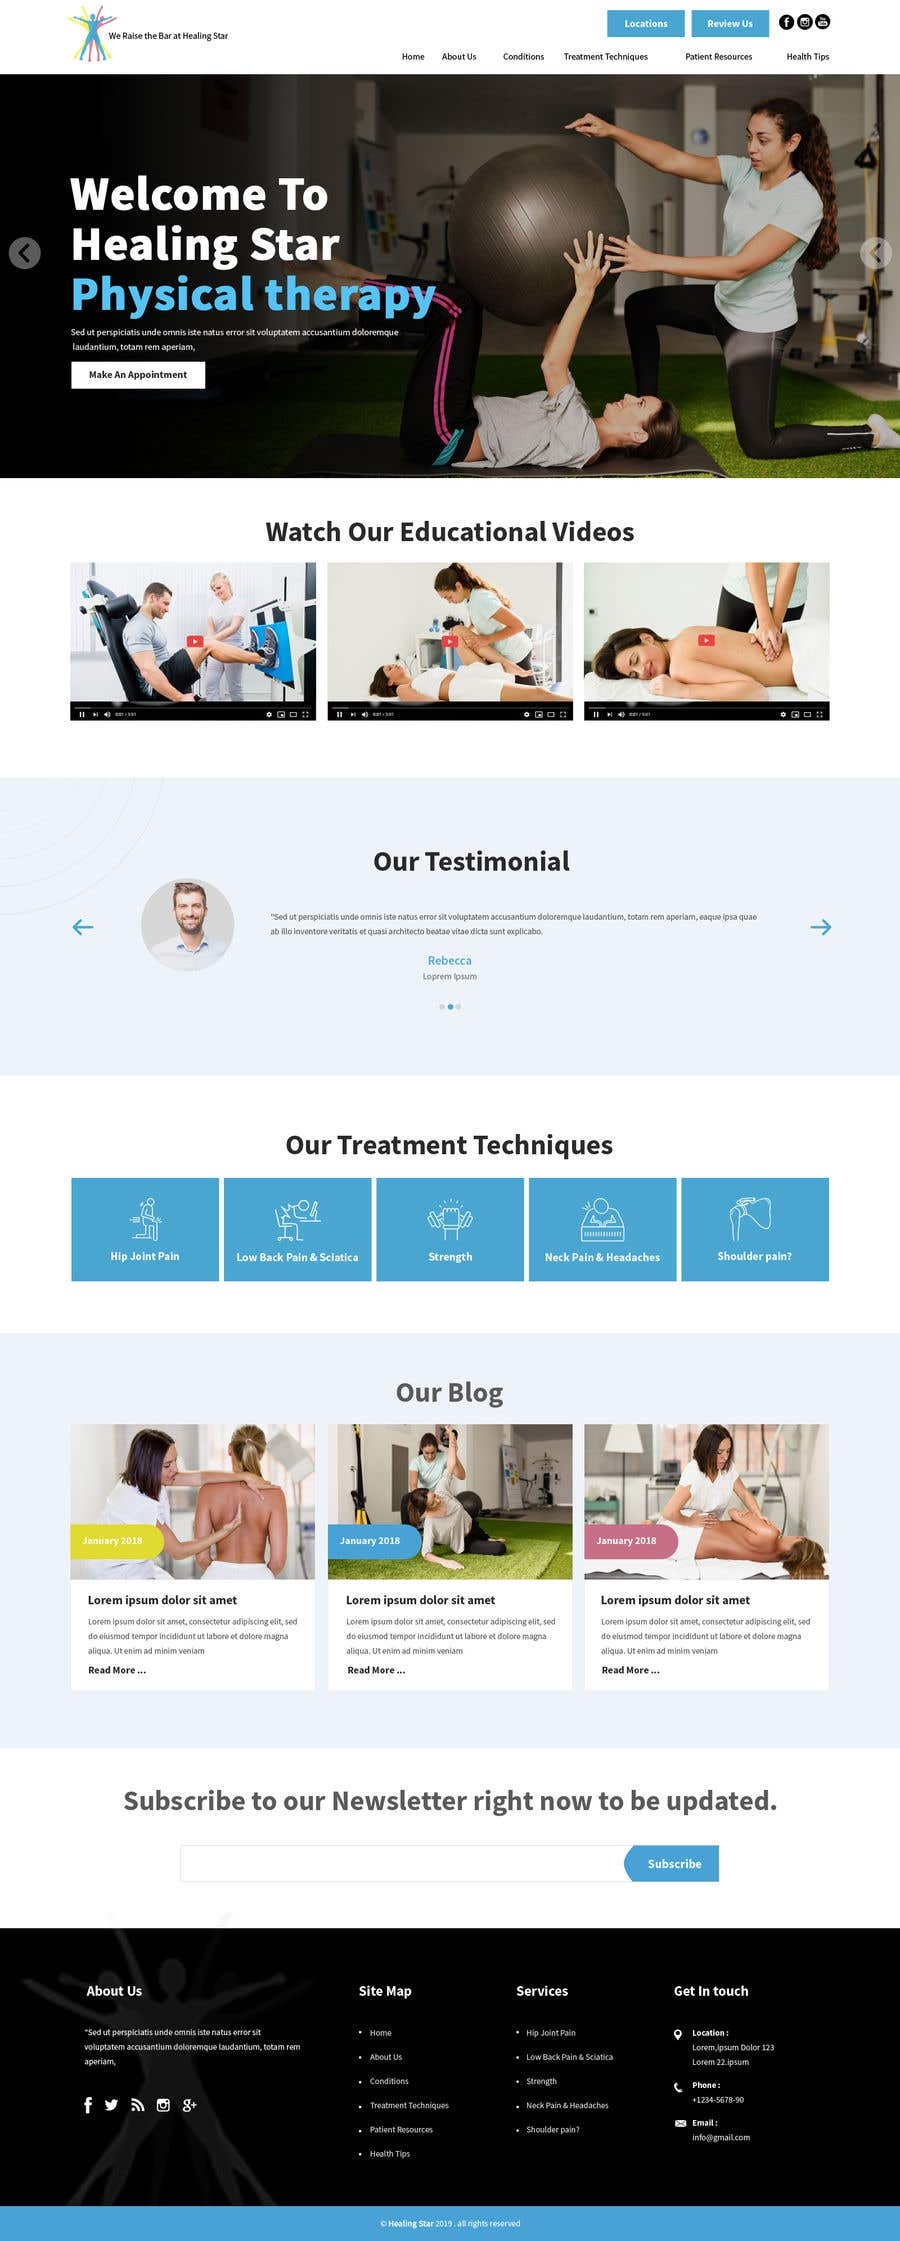 Penyertaan Peraduan #15 untuk Need PSD for physical therapy website home page